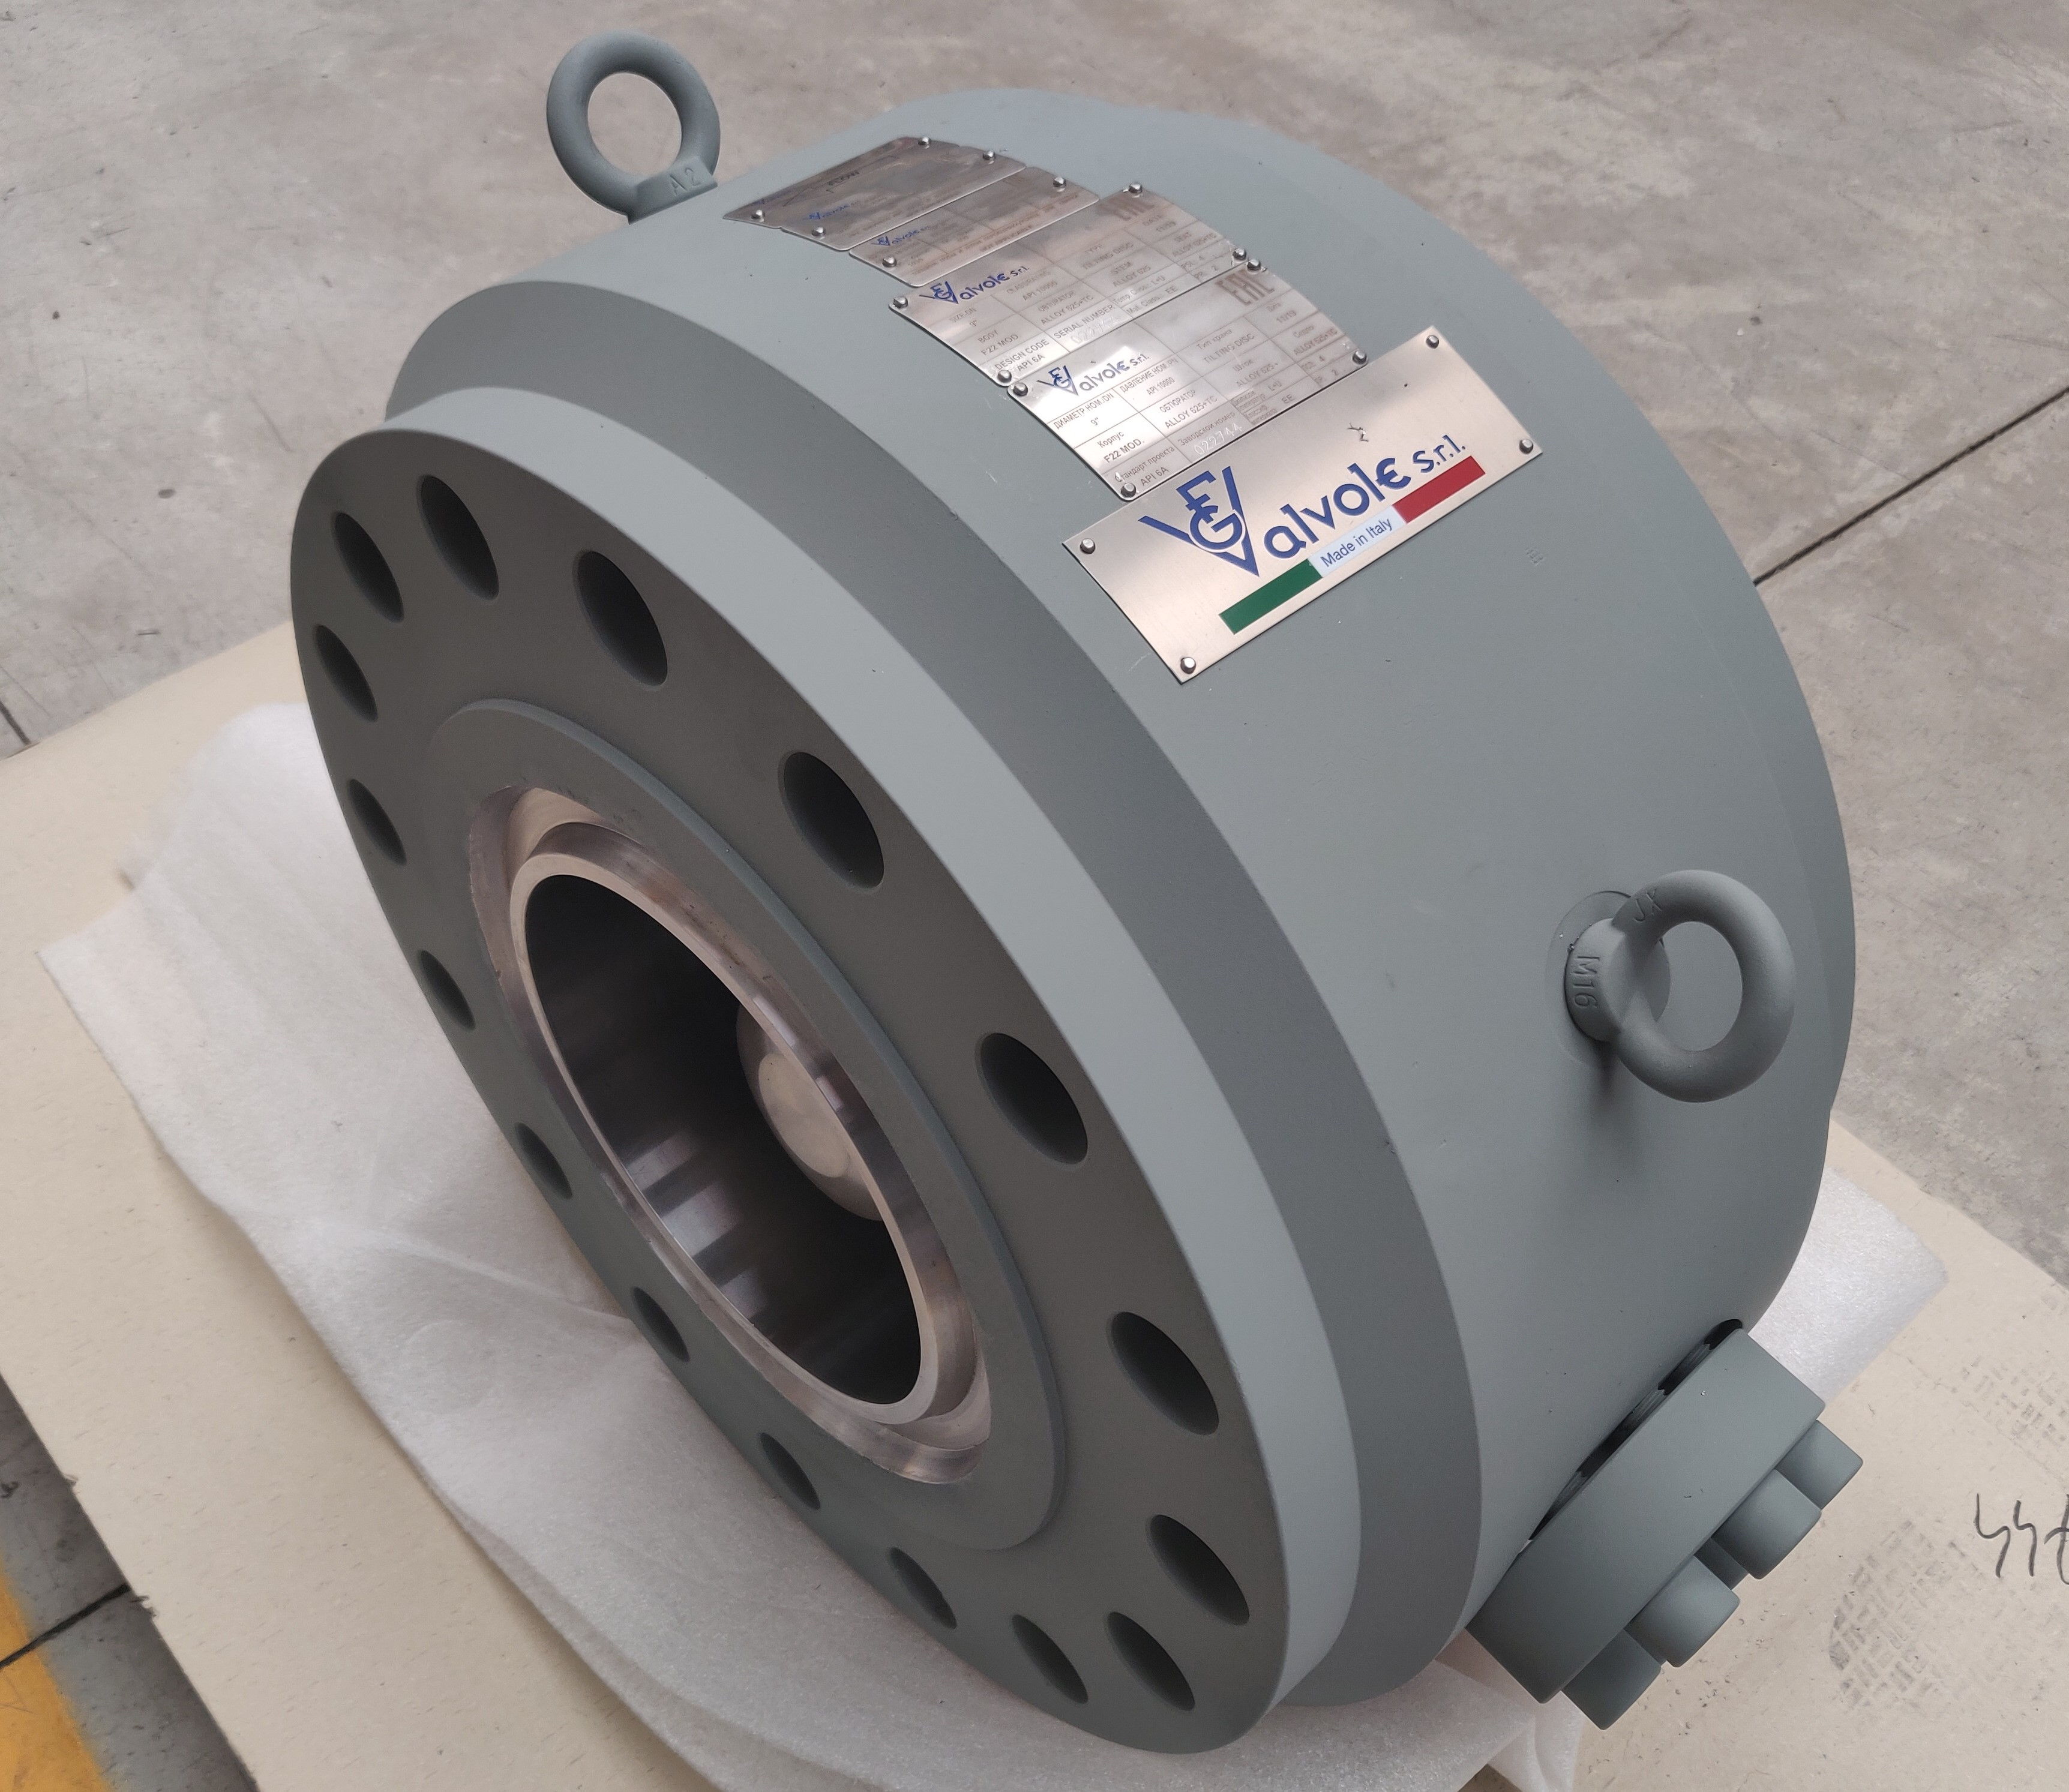 180205 4th Injection Tilting Disc Wafer Check 9 inch API 10000 (9)